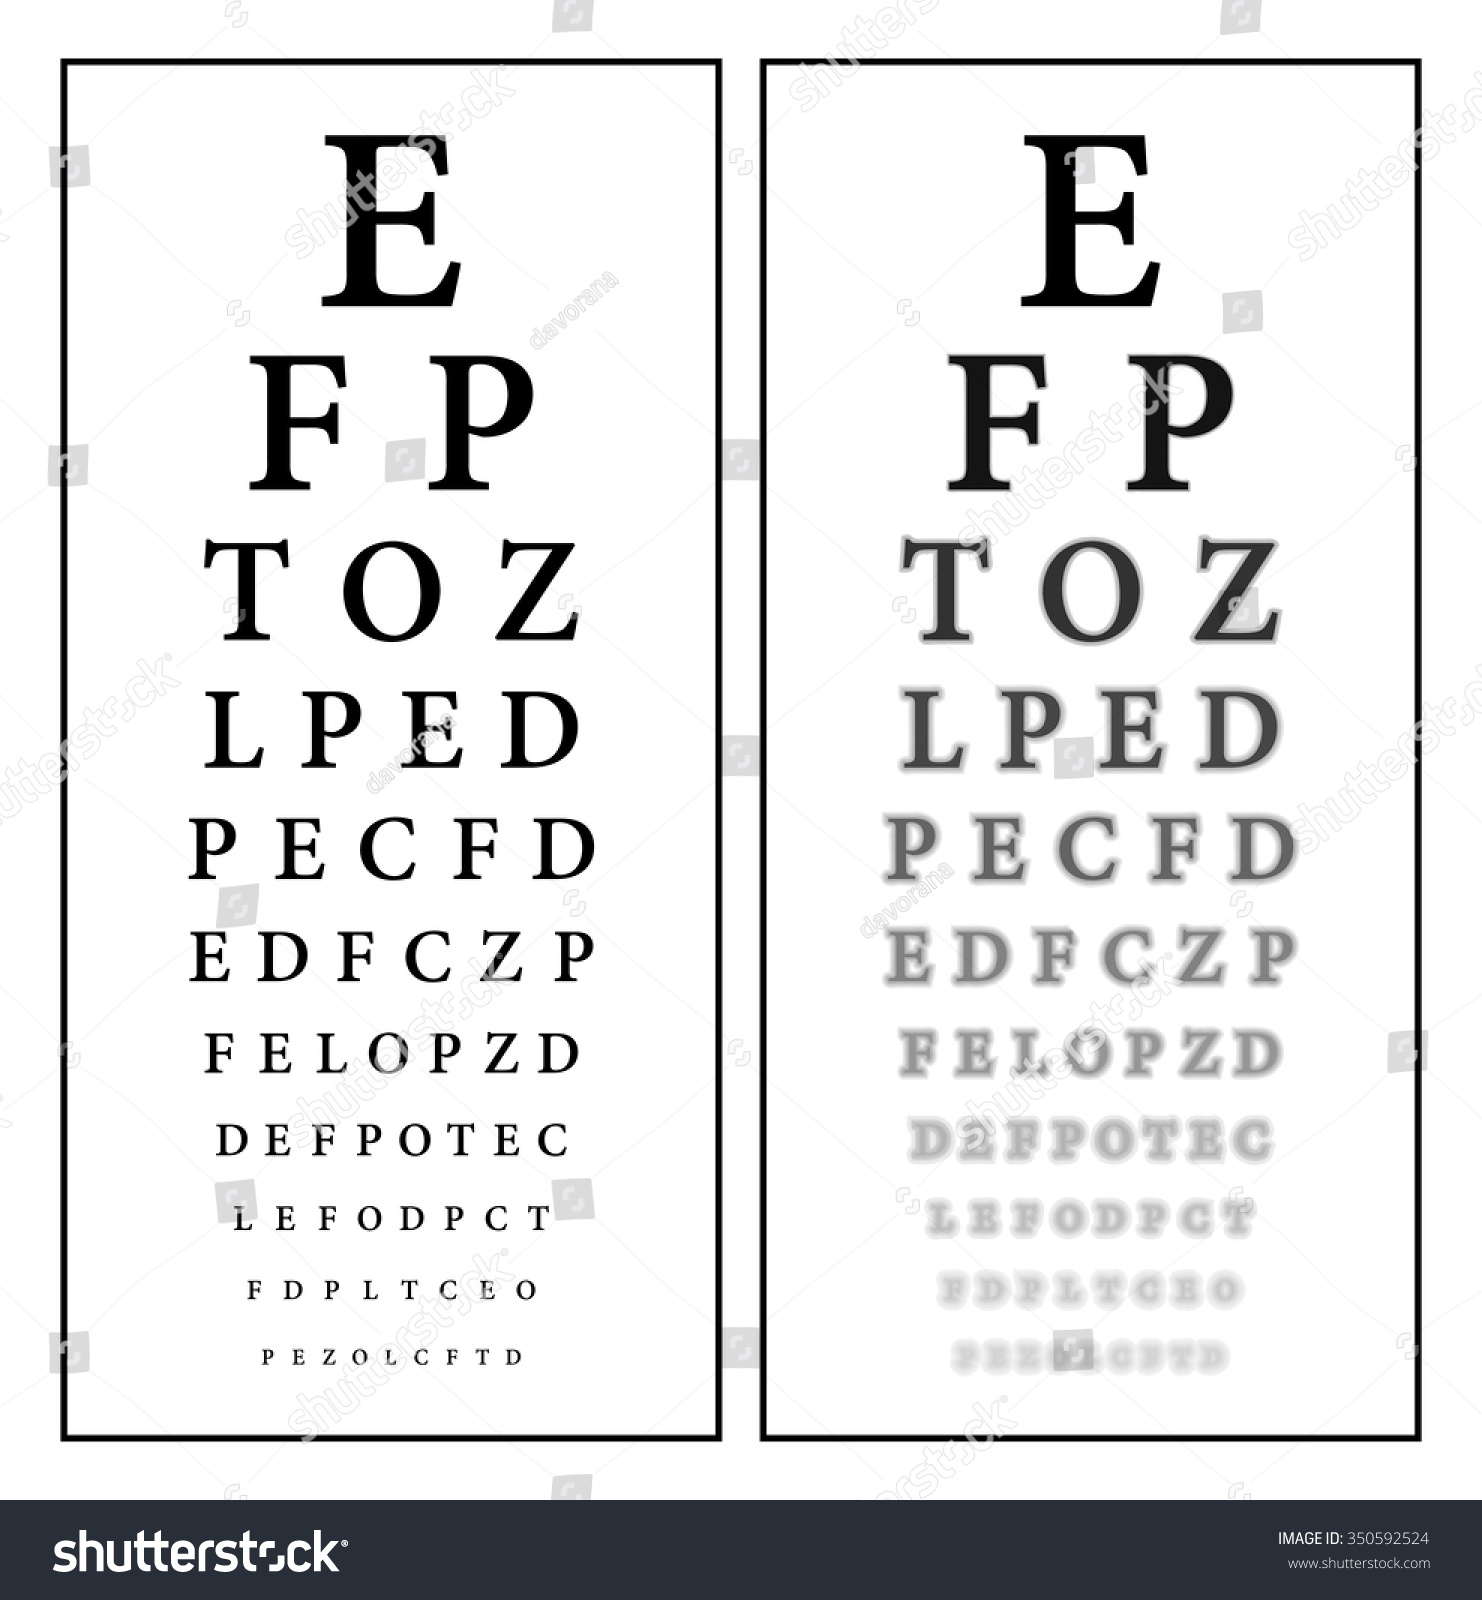 Sharp unsharp snellen eye chart vision stock vector 350592524 sharp and unsharp snellen eye chart vision test exam with alphabet letters for measuring visual geenschuldenfo Choice Image